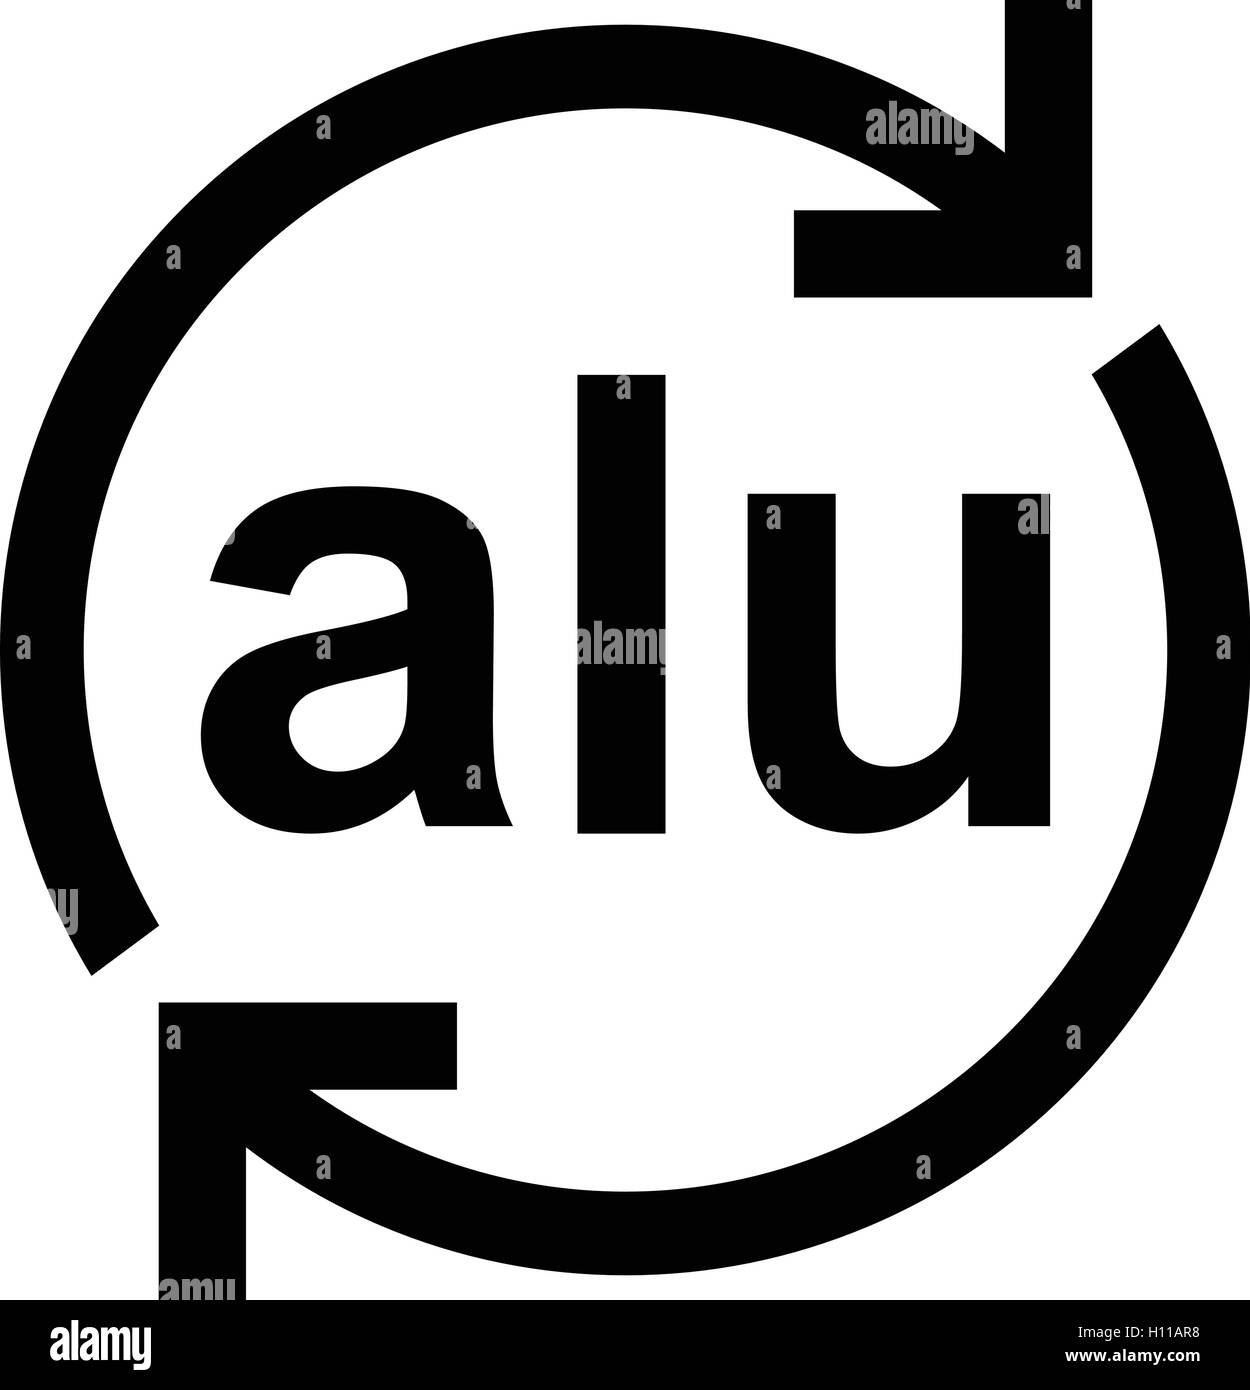 Mobius symbol black and white stock photos images alamy aluminium recycling symbol alu metals recycling code alu vector illustration stock image buycottarizona Image collections